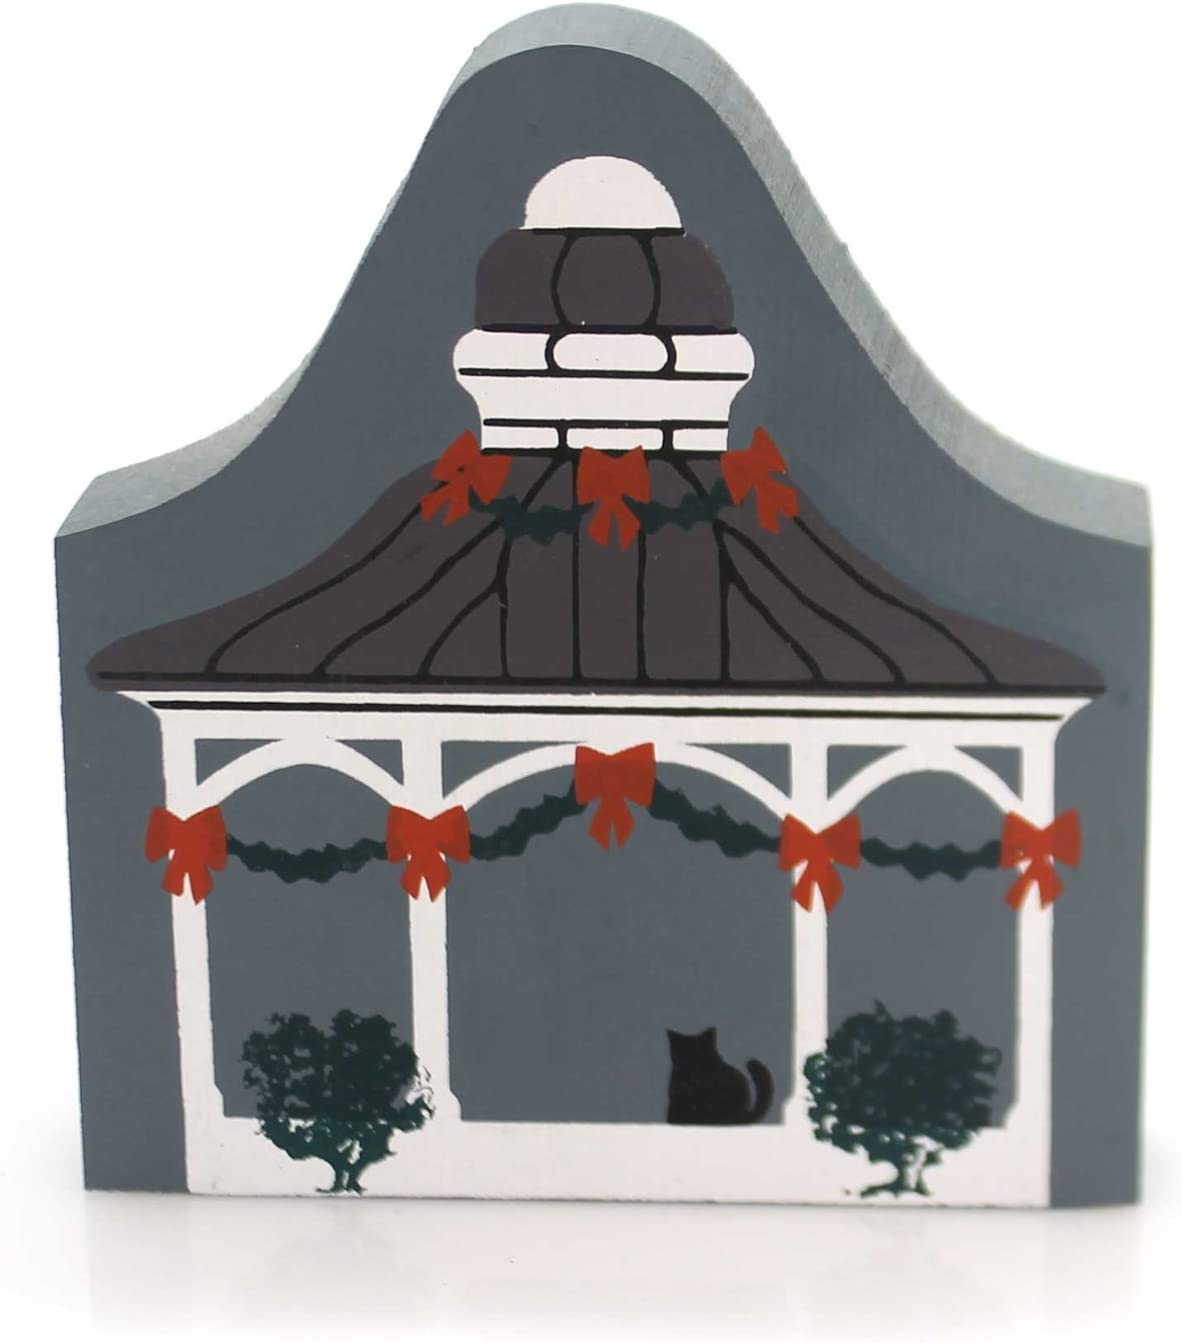 CATS MEOW VILLAGE Reversible BANDSTAND Wood Retired Christmas 118